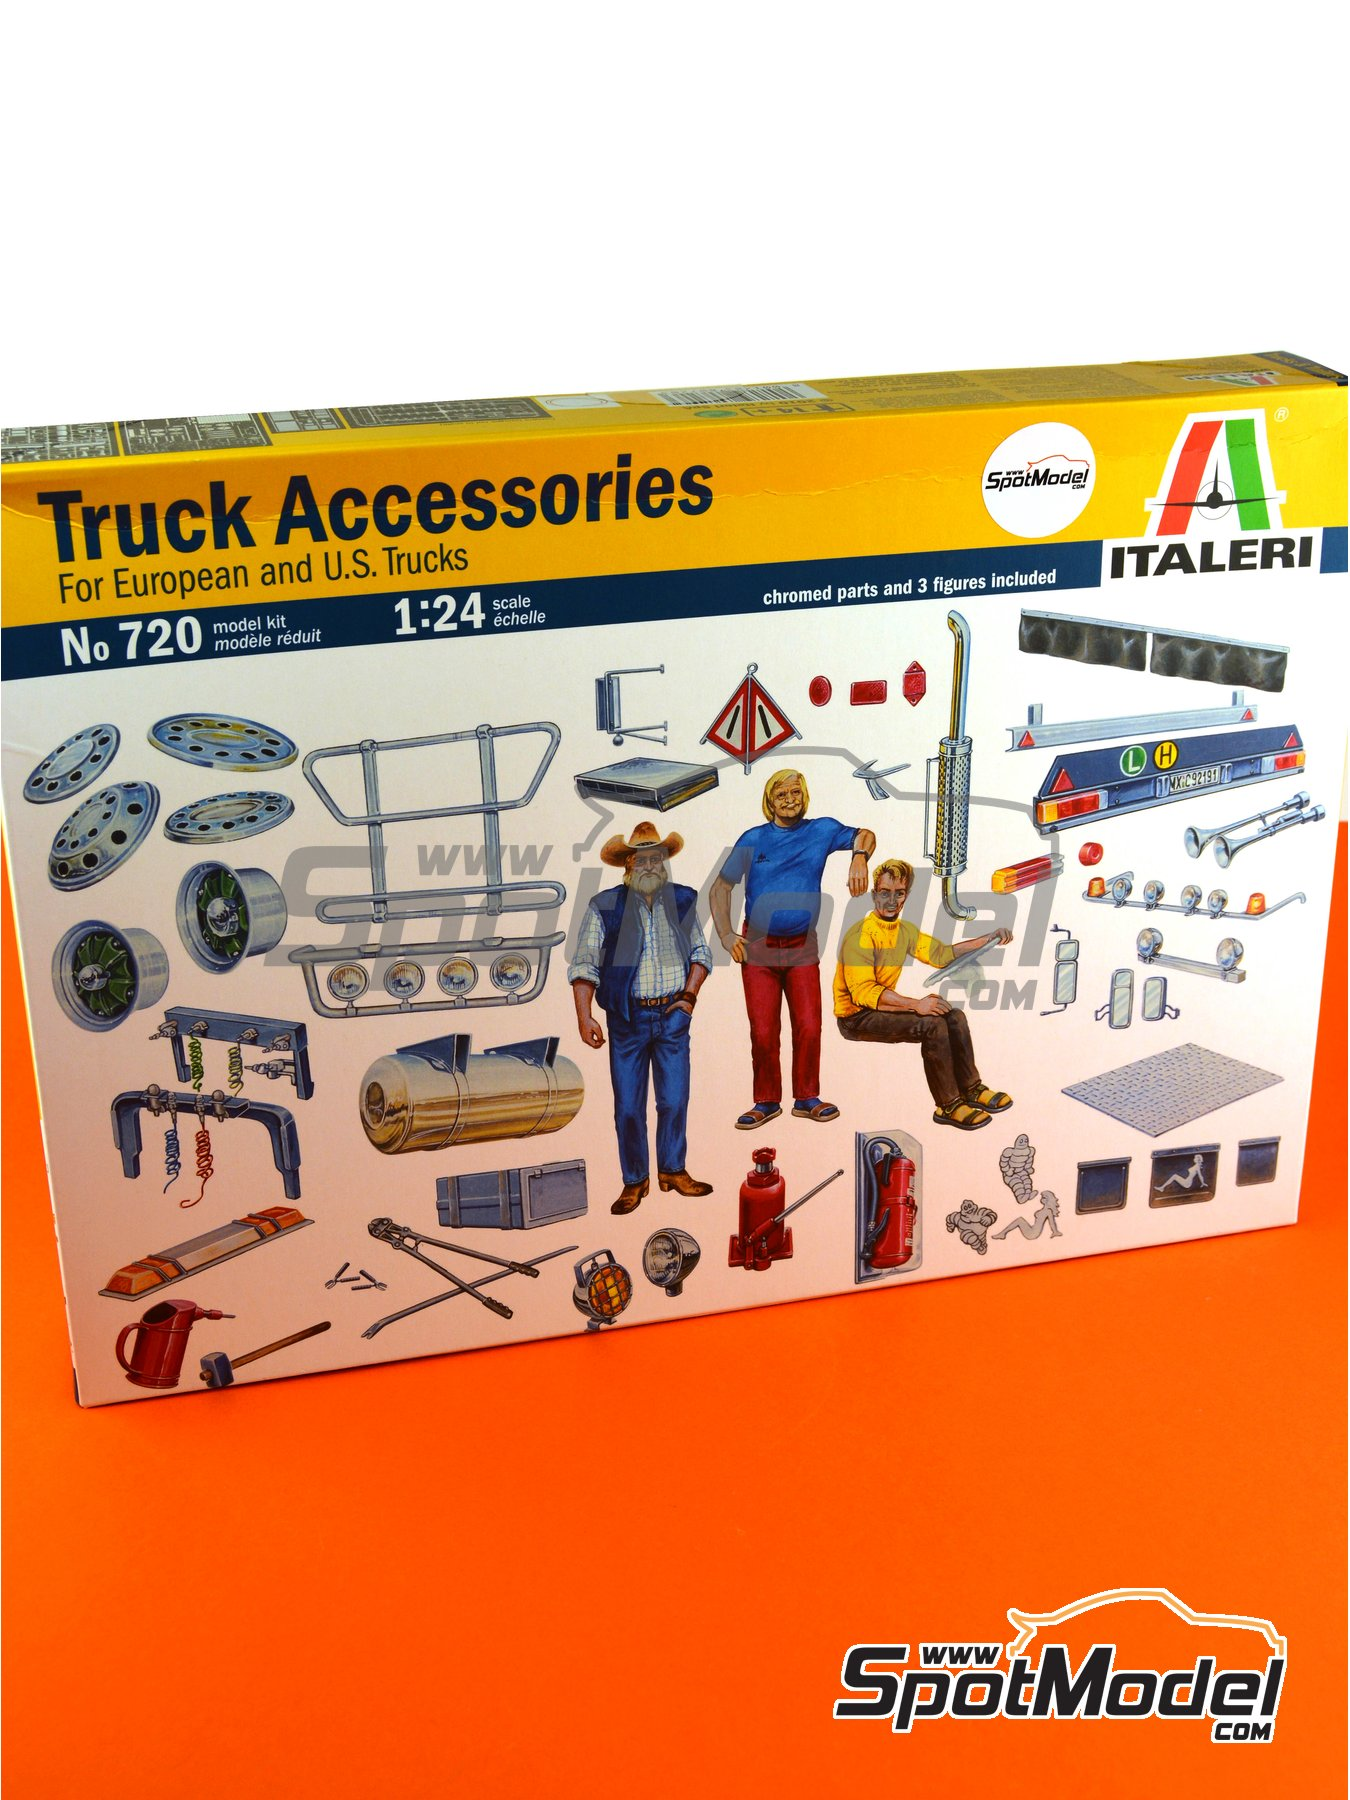 Truck accesories and figures | Model kit in 1/24 scale manufactured by Italeri (ref. 0720) image